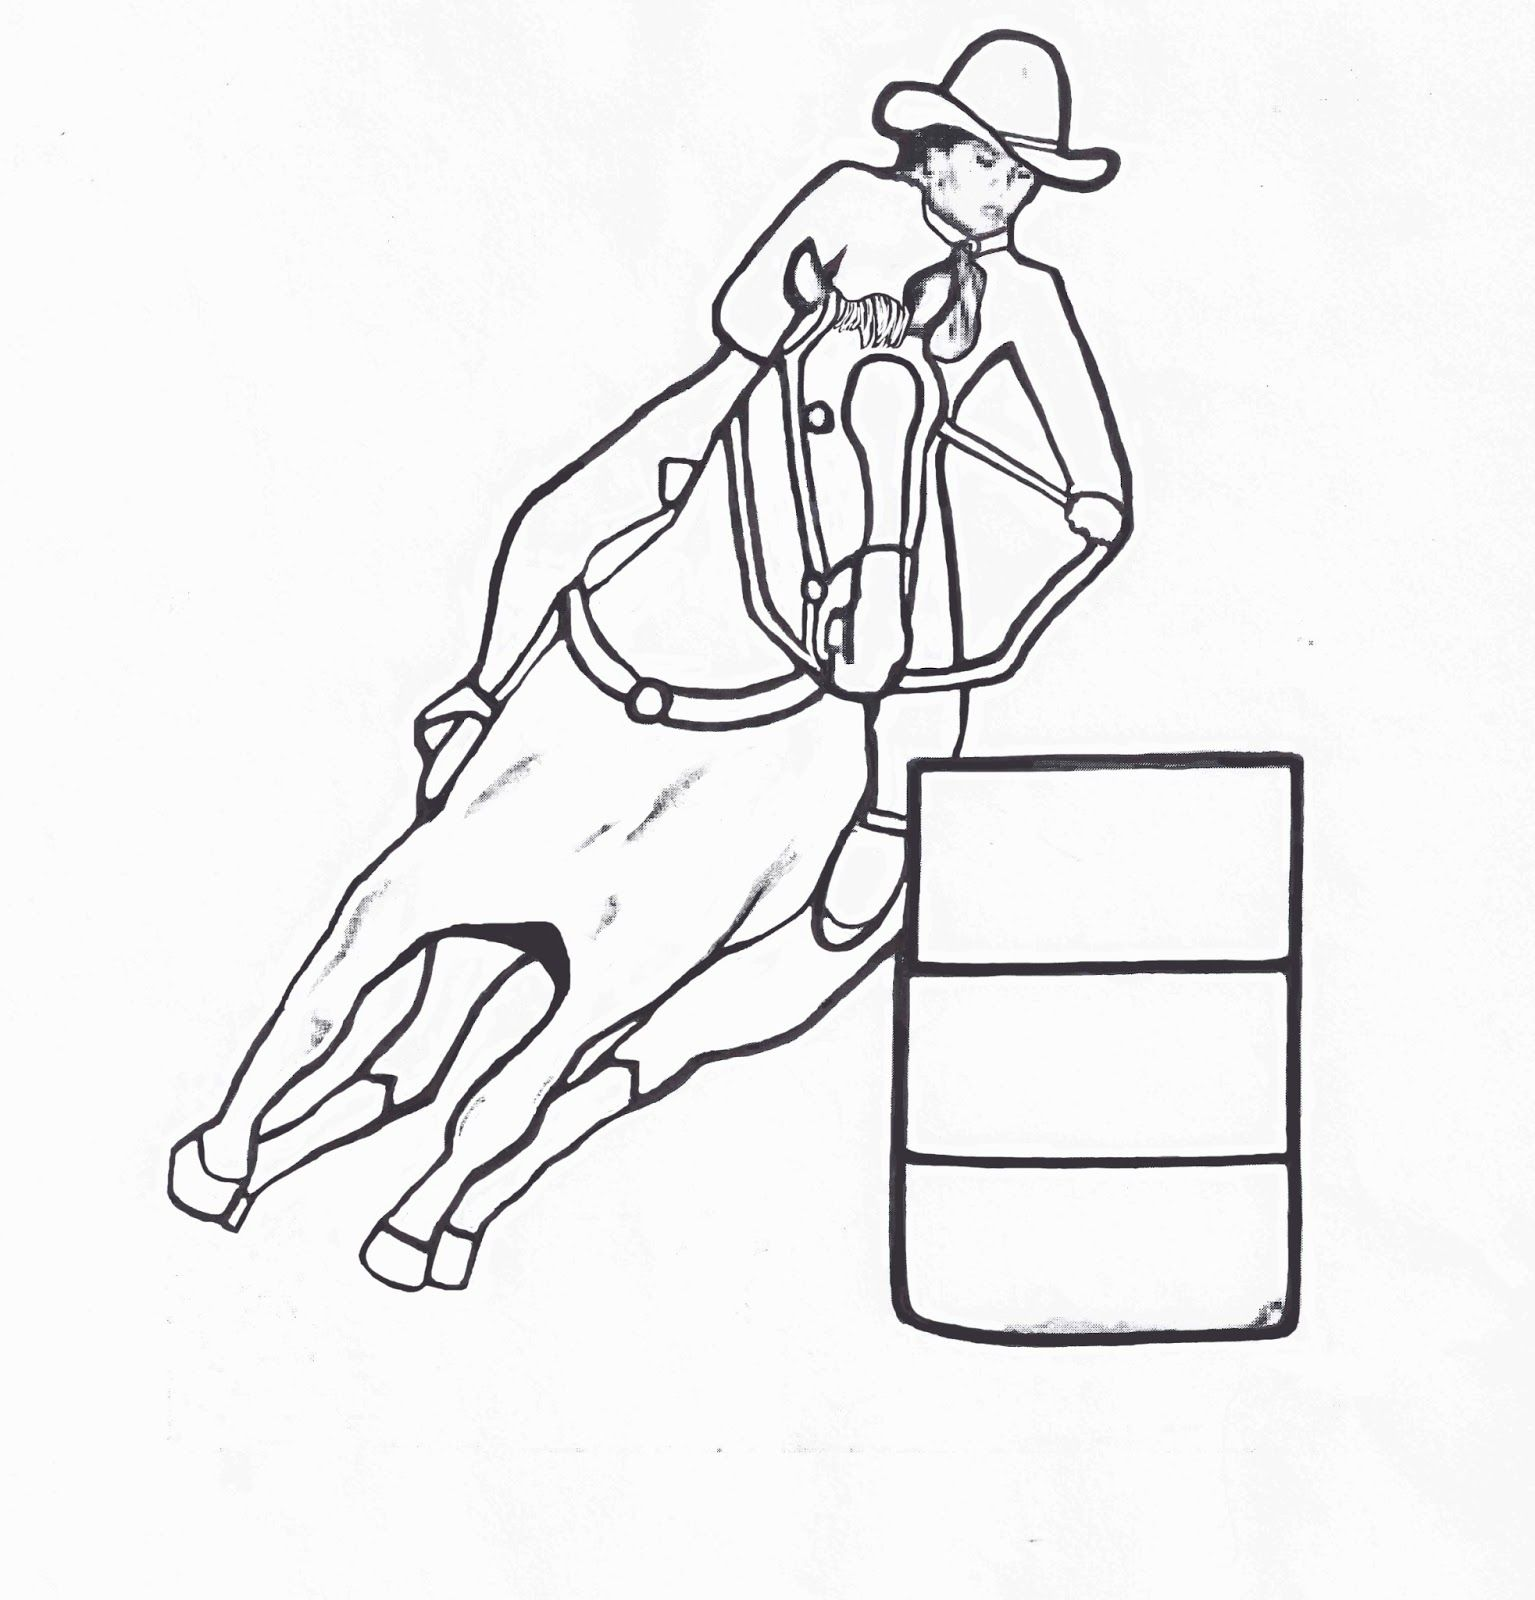 Image Result For Drawings Of Barrel Racing Coloring Pages Free Coloring Pages Rodeo Crafts